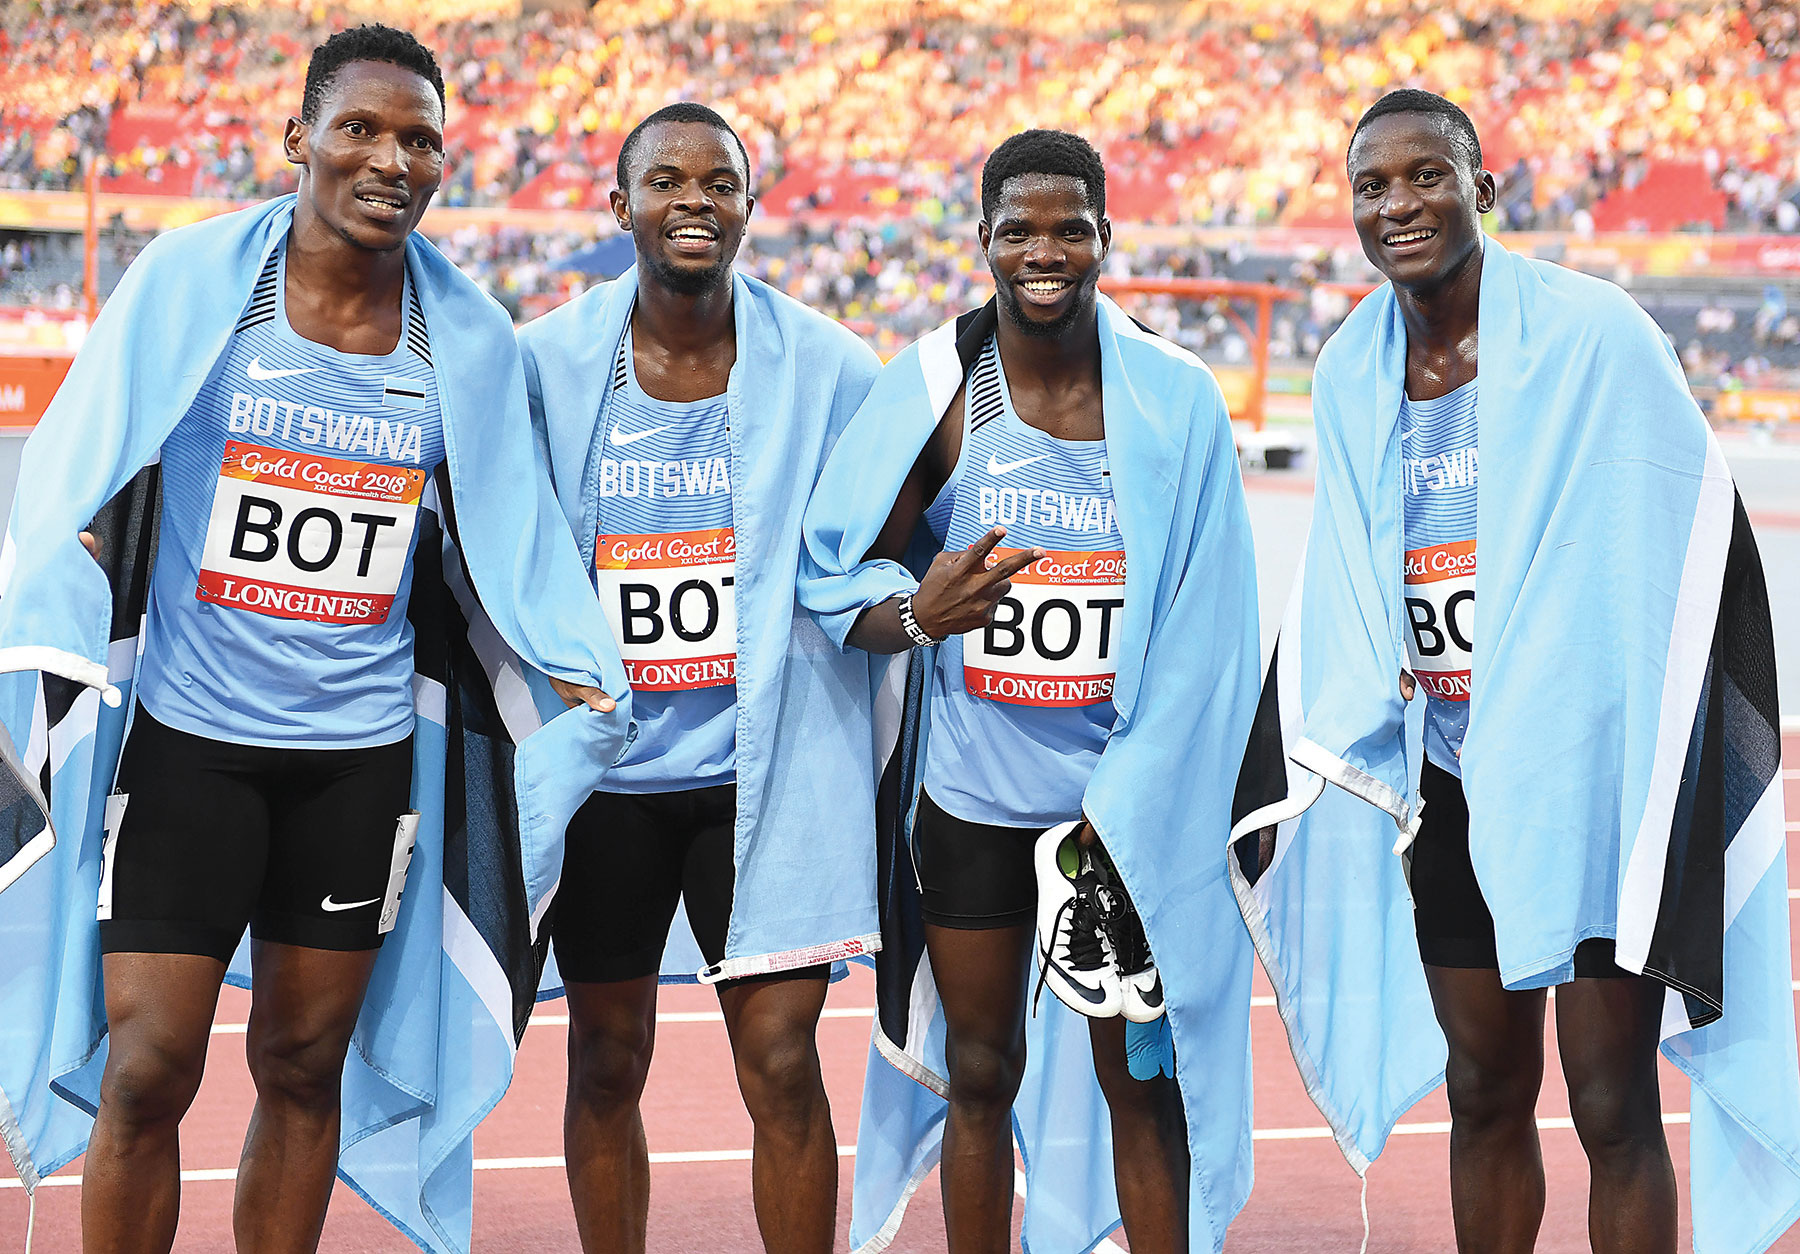 A Race Against Time for Botswana to Tokyo Olympics   Sunday Standard